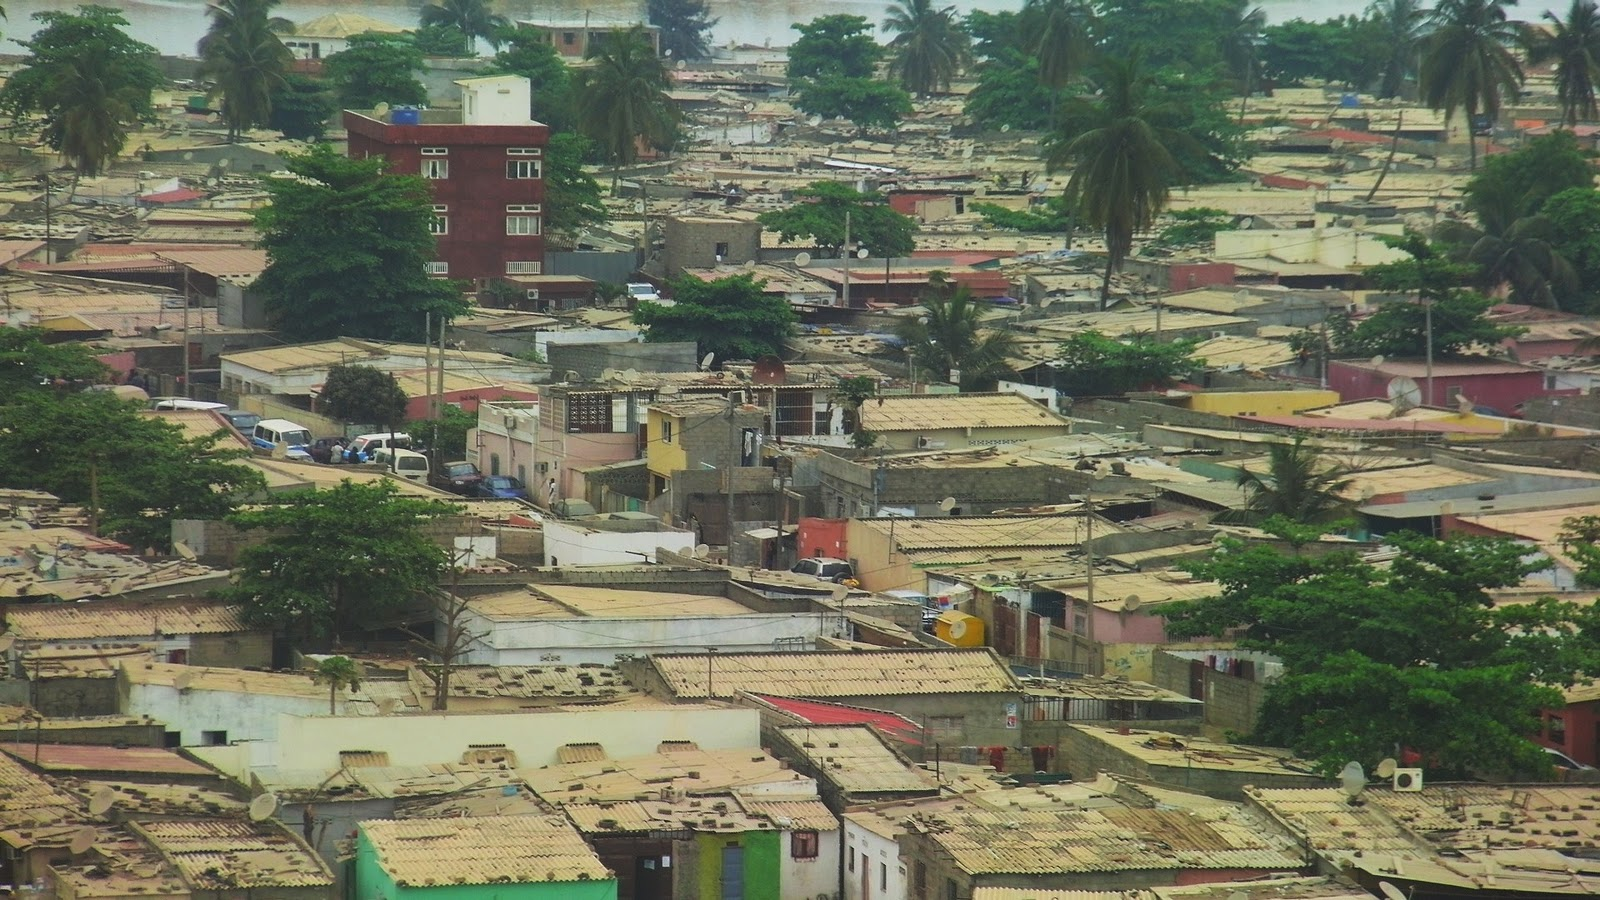 the roof above my head: Musseque Chicala - view from the Fort